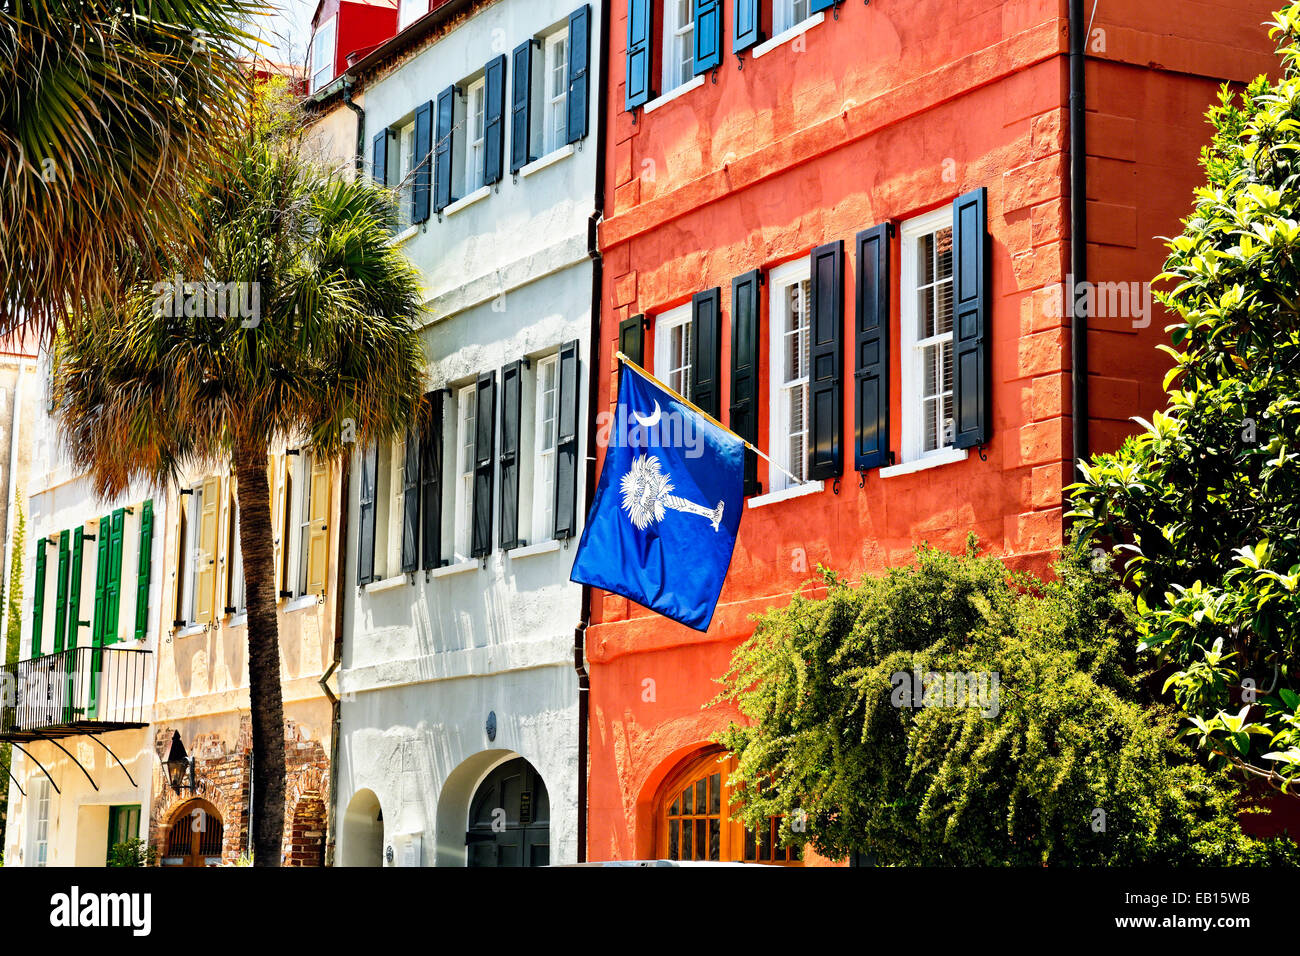 Low Angle View of Colorful House Exteriors with a Flag, Charleston, South Carolina, USA - Stock Image